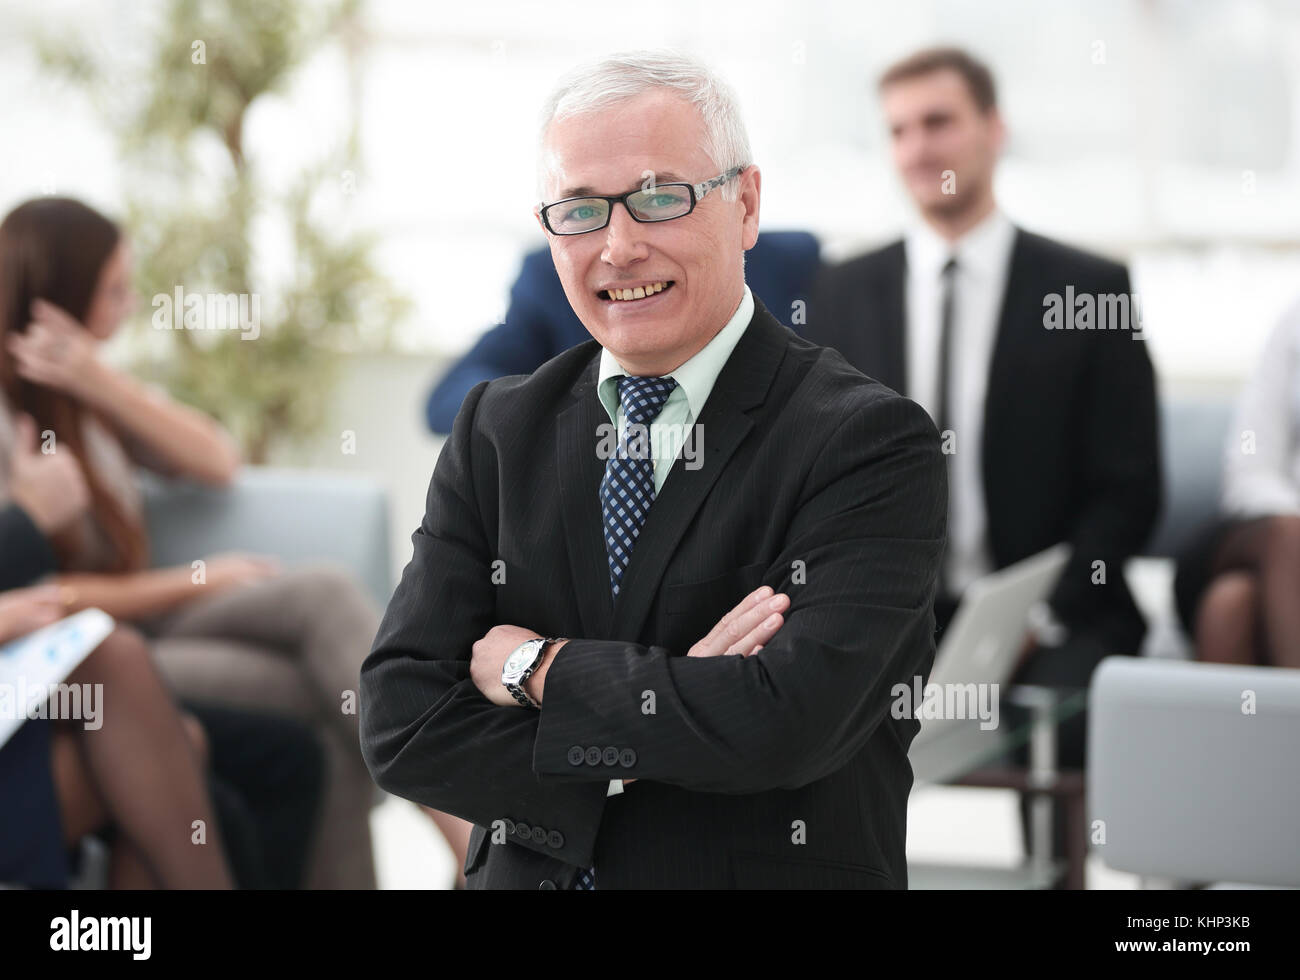 Smiling senior businessman sur le contexte de l'équipe commerciale Photo Stock